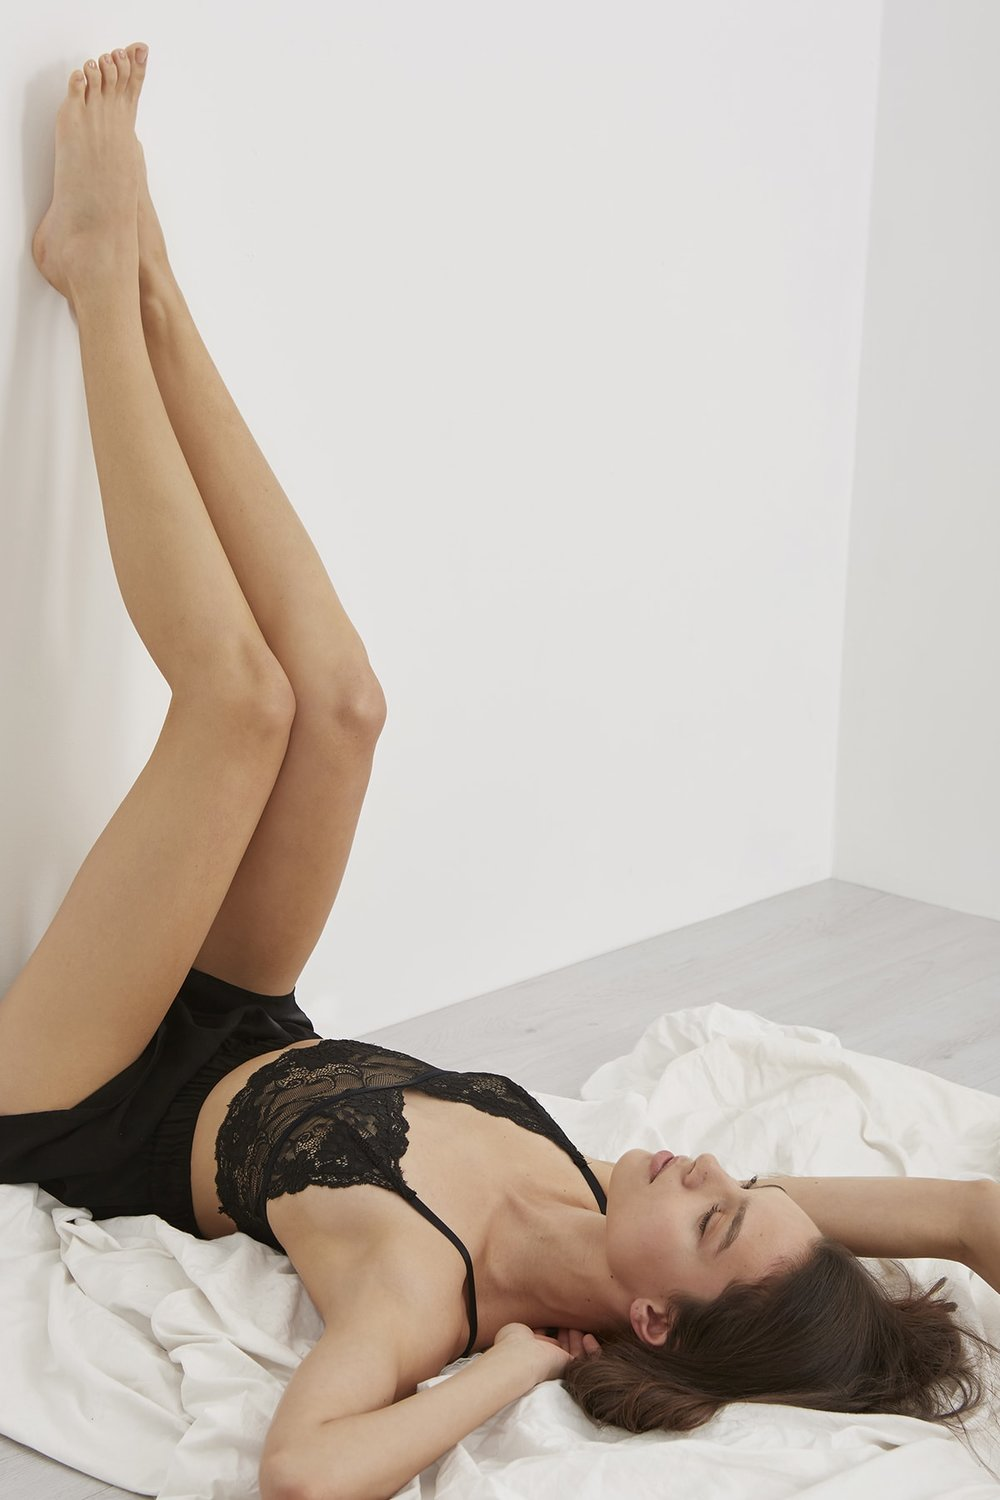 KS_INTIMATES_SEPTEMBER_HR-23-min.jpg